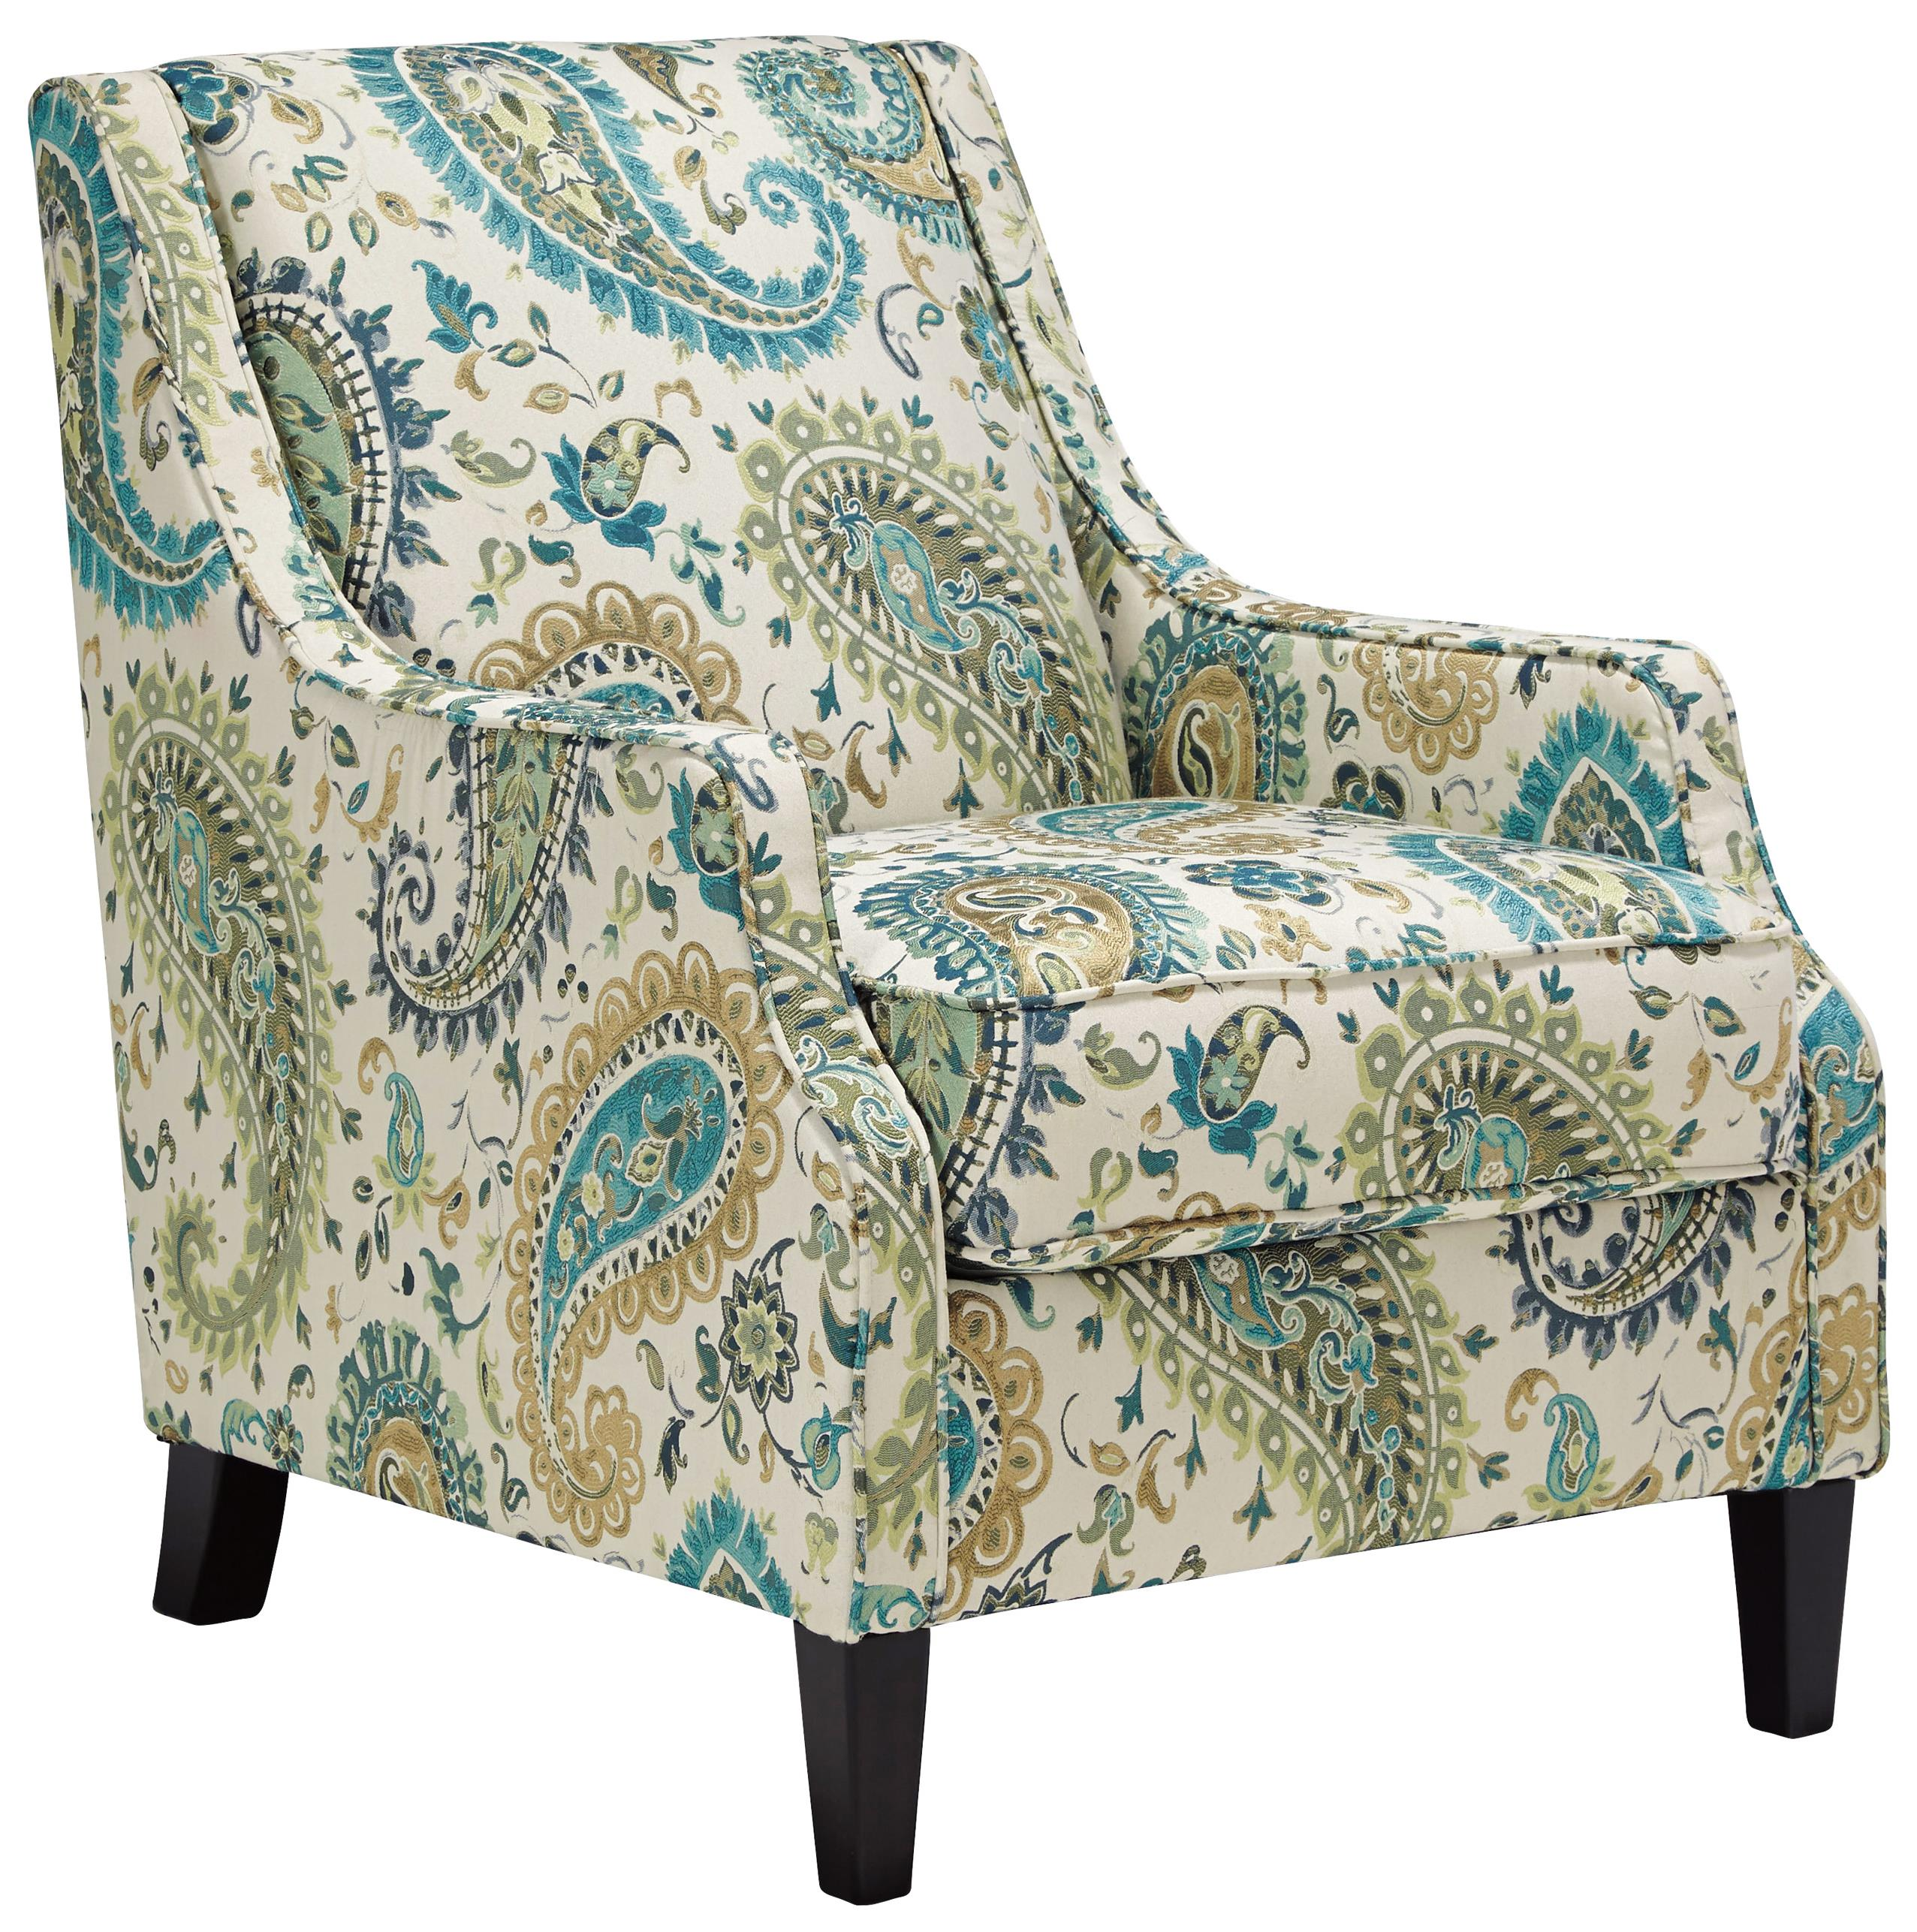 Transitional Accent Chair In Paisley Fabric